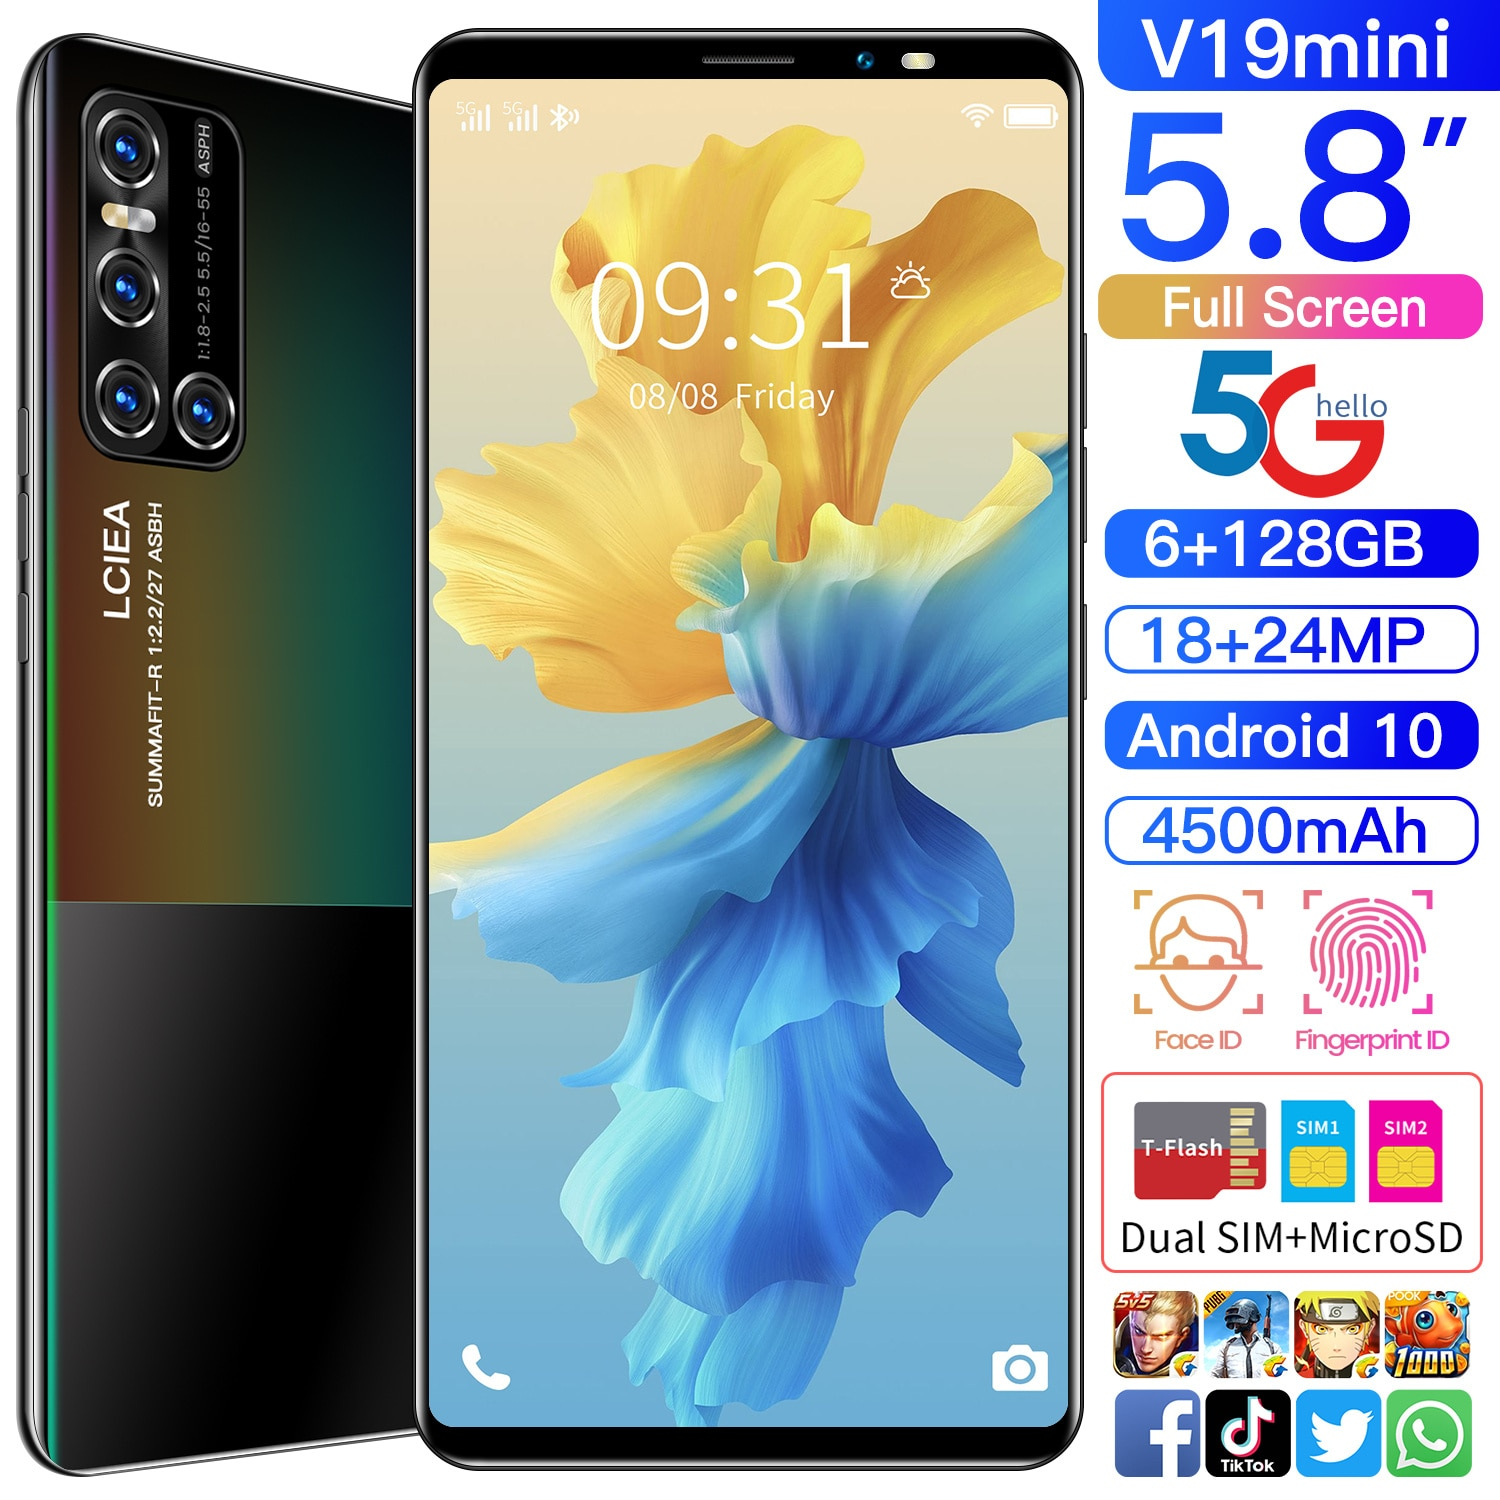 Global Version V19mini 5.8inch Network Smartphone MTK6598 GPS 6GB RAM 128GB ROM 18+24MP 5800mah Cell